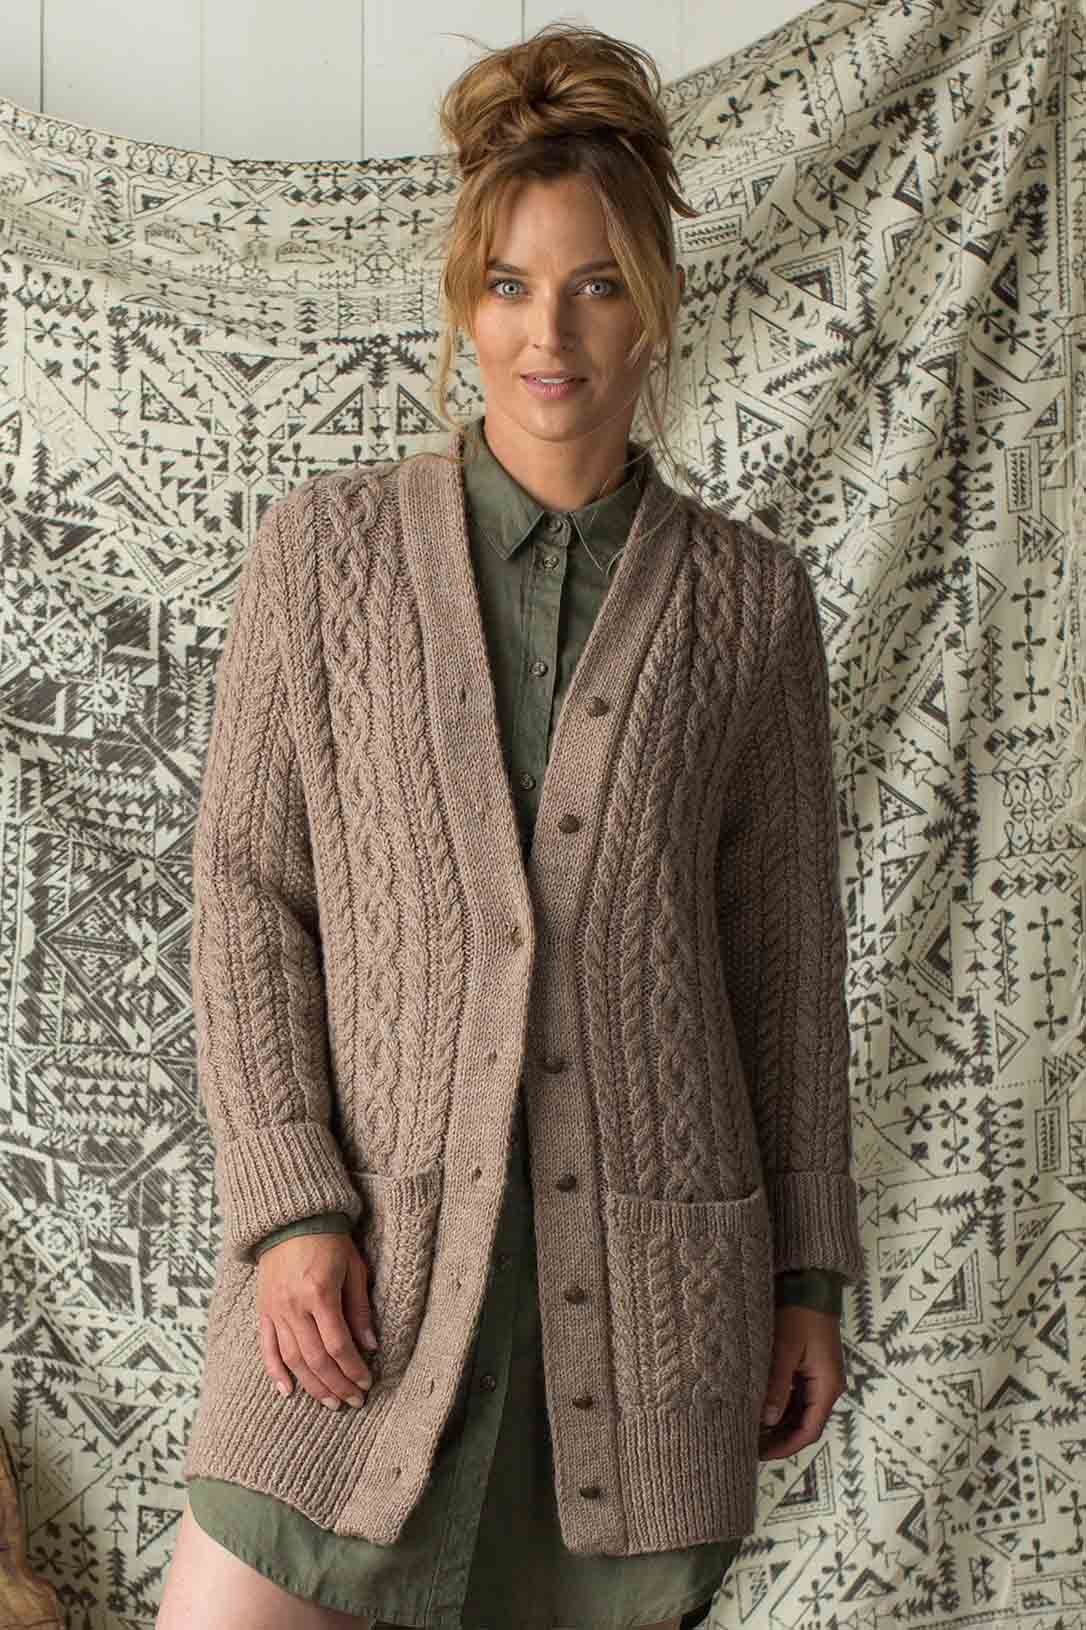 a1b080b34 Curl up with Sarah Solomon s Clear Creek Cardigan! This standout modern classic  cardigan knitting pattern showcases all the best